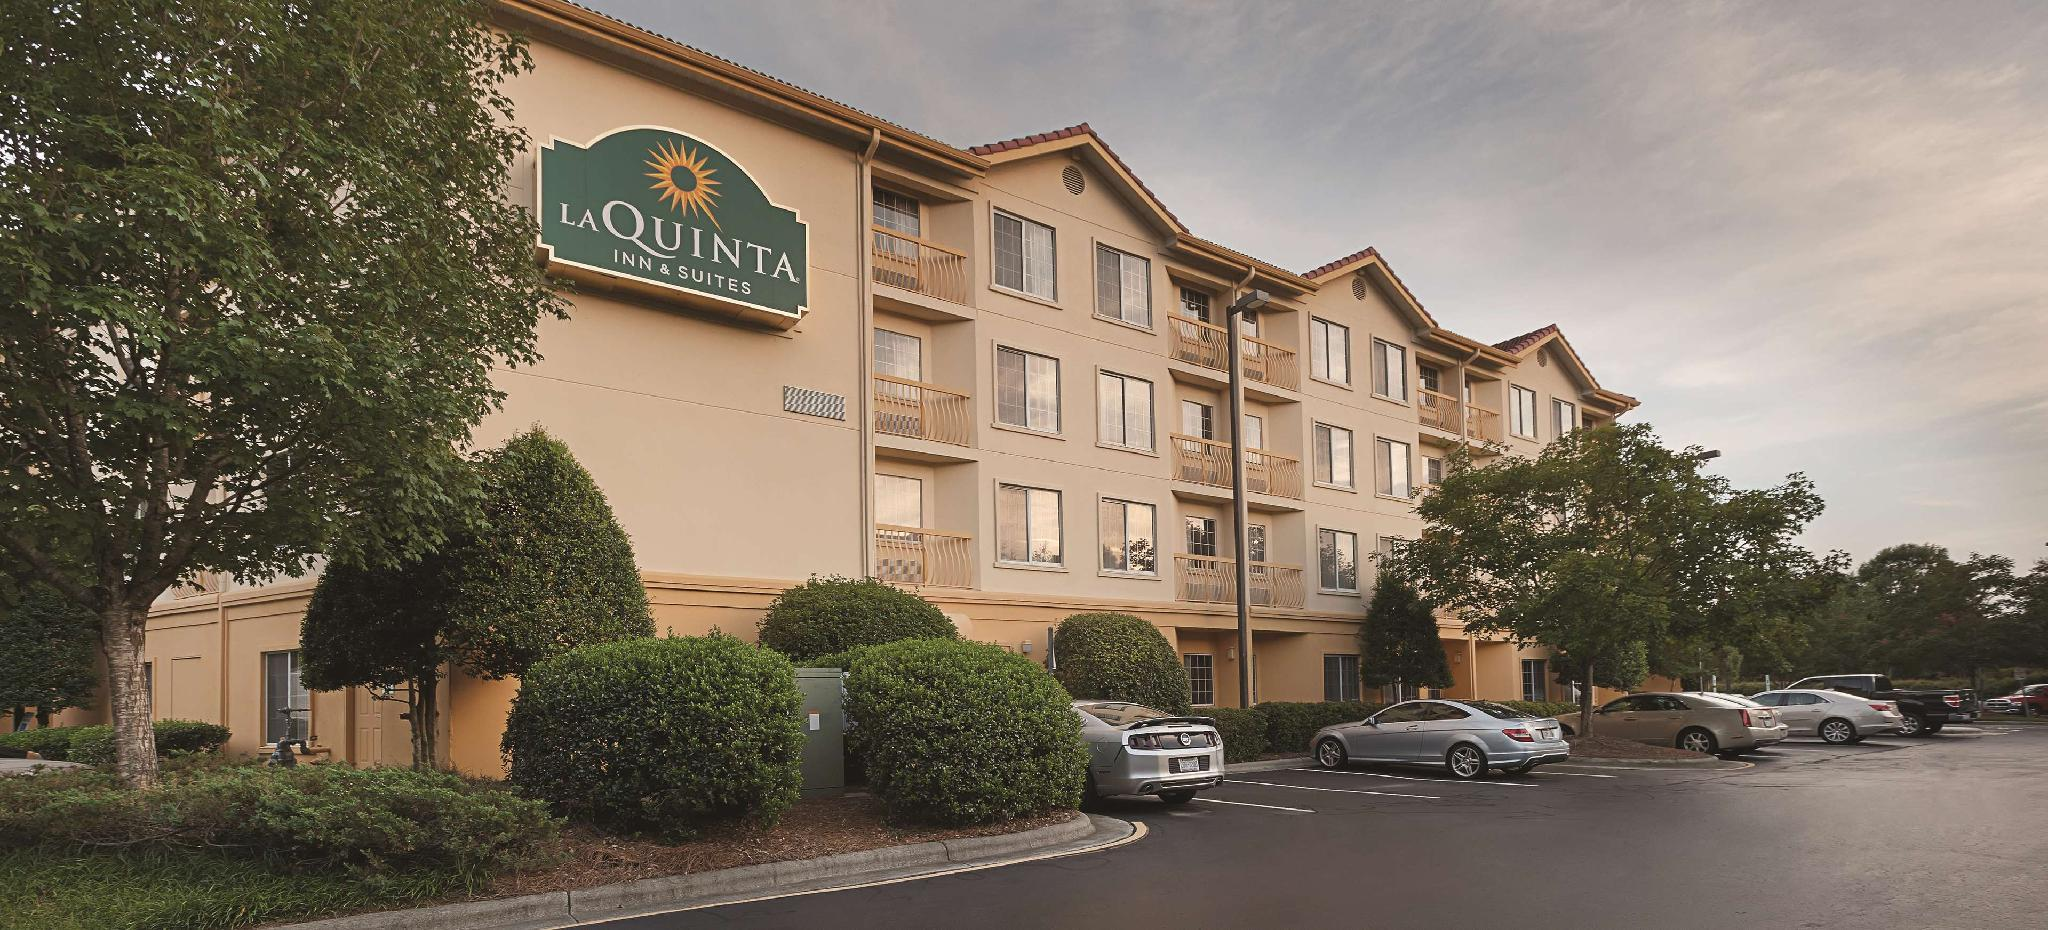 La Quinta Inn And Suites By Wyndham Raleigh Durham Airport